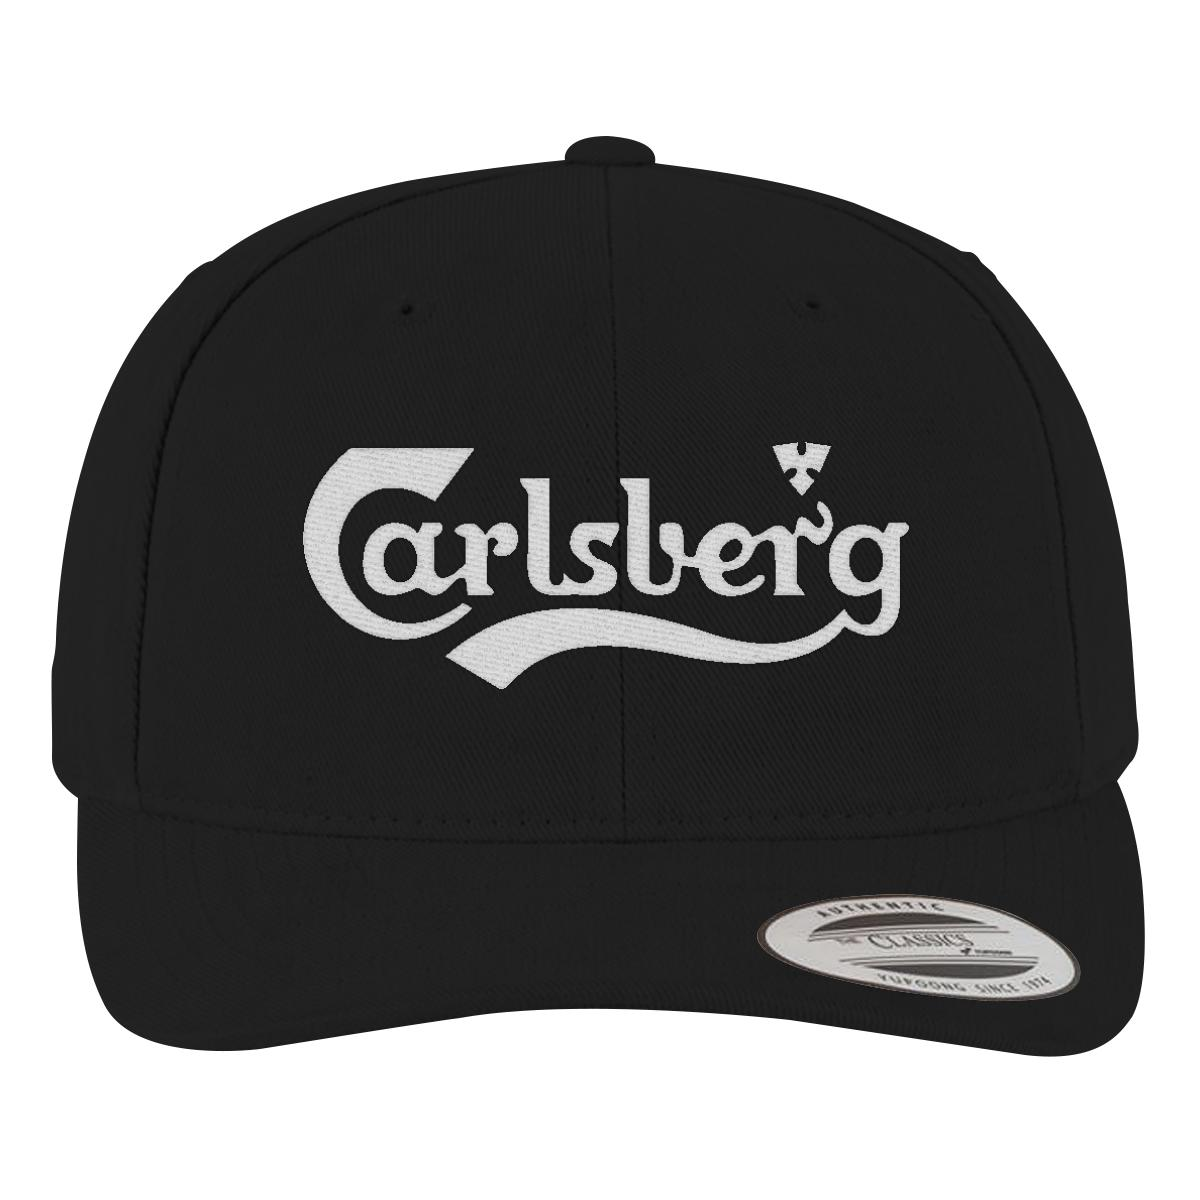 48a19f15ba9 Carlsberg Logo Brushed Cotton Twill Hat - Embroidery Change style